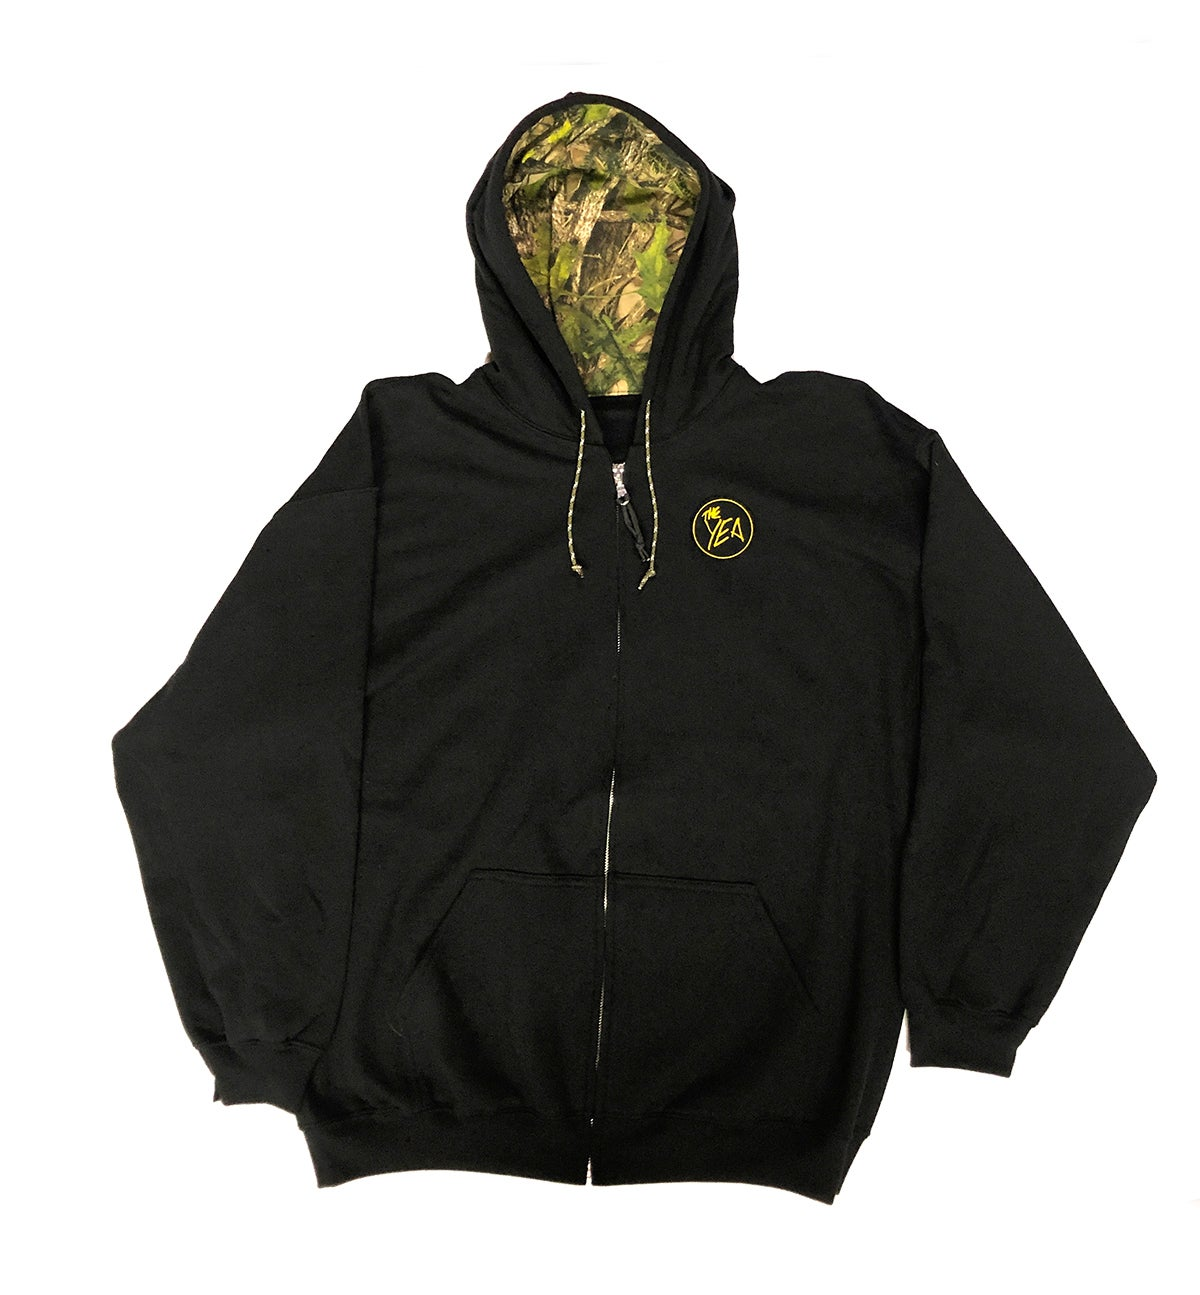 Image of 1of1: Black Zip Camo in Hood XL